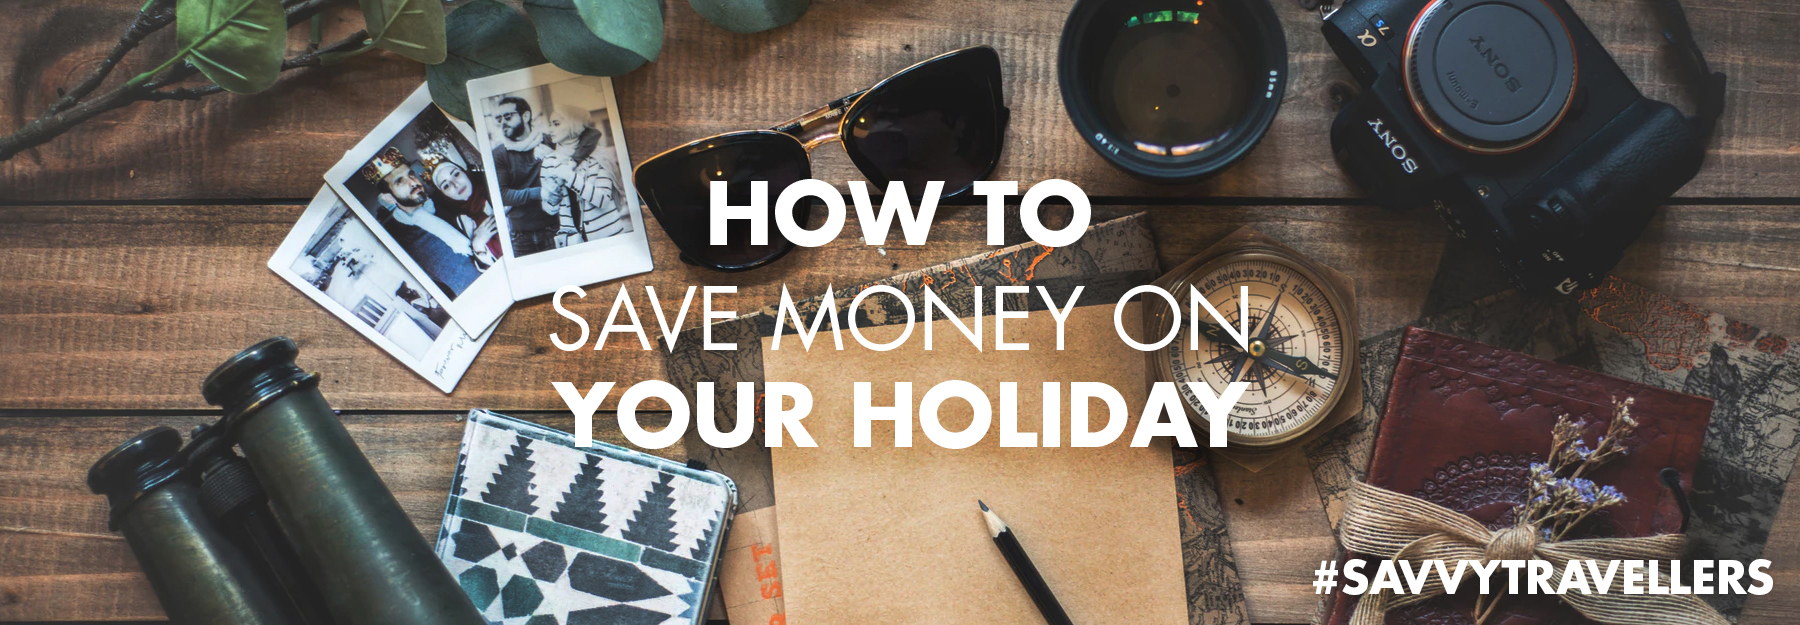 How to save money on your holiday